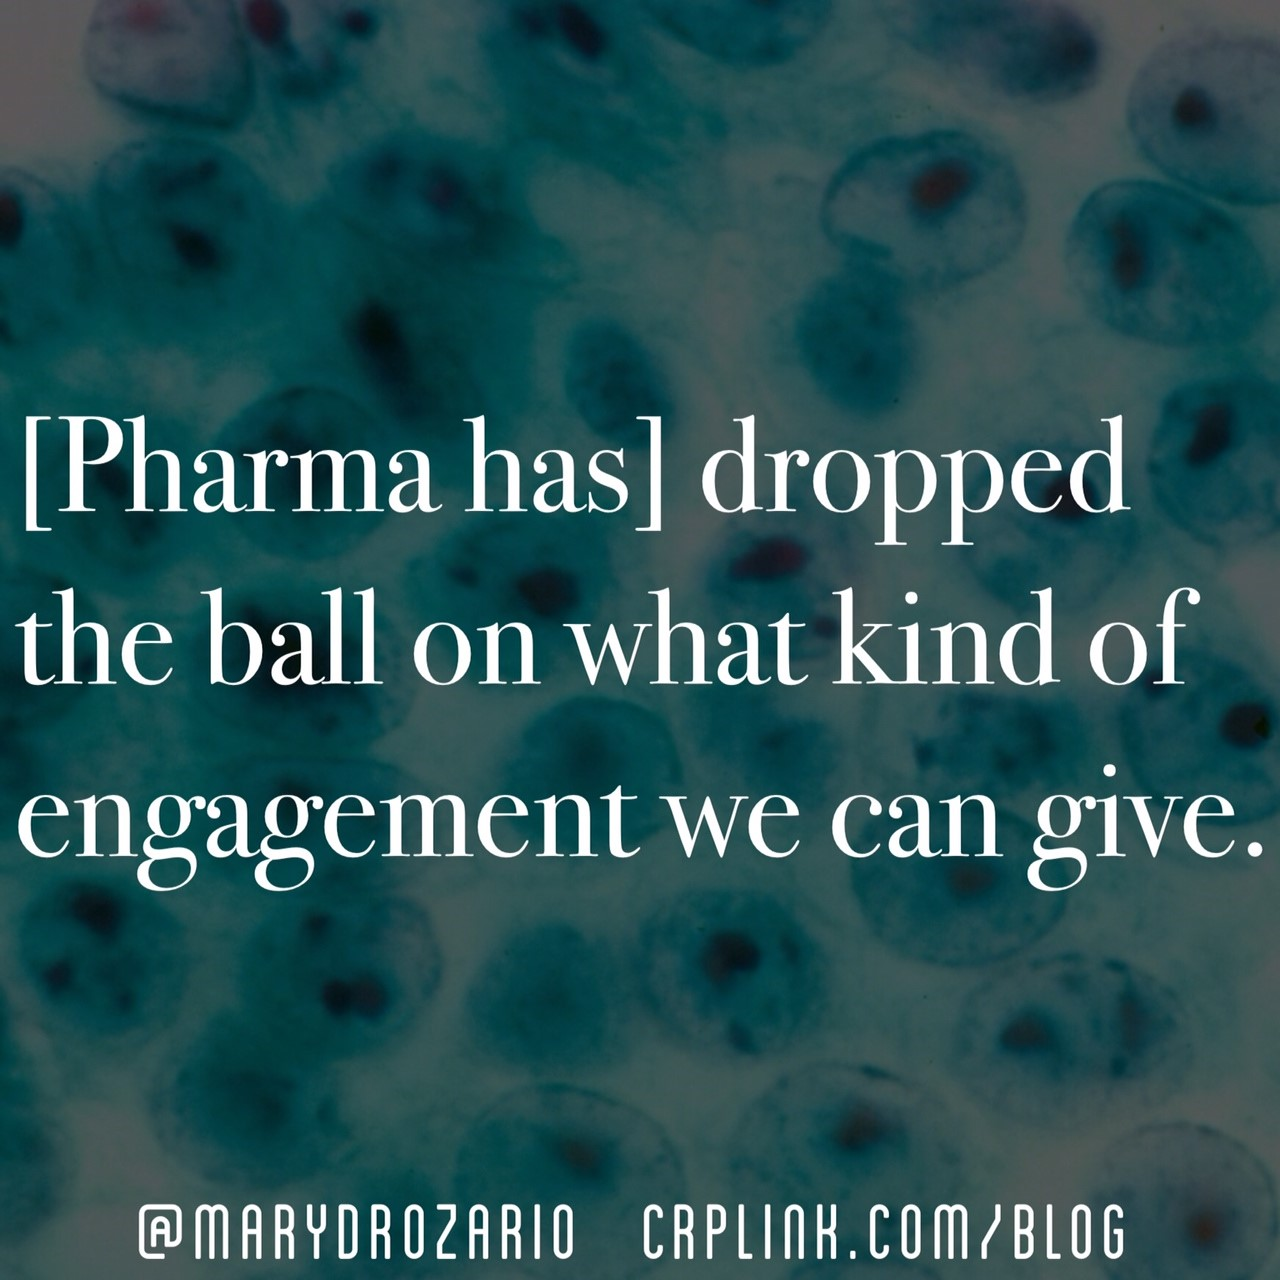 [Pharma has] dropped the ball on what kind of engagement we can give.